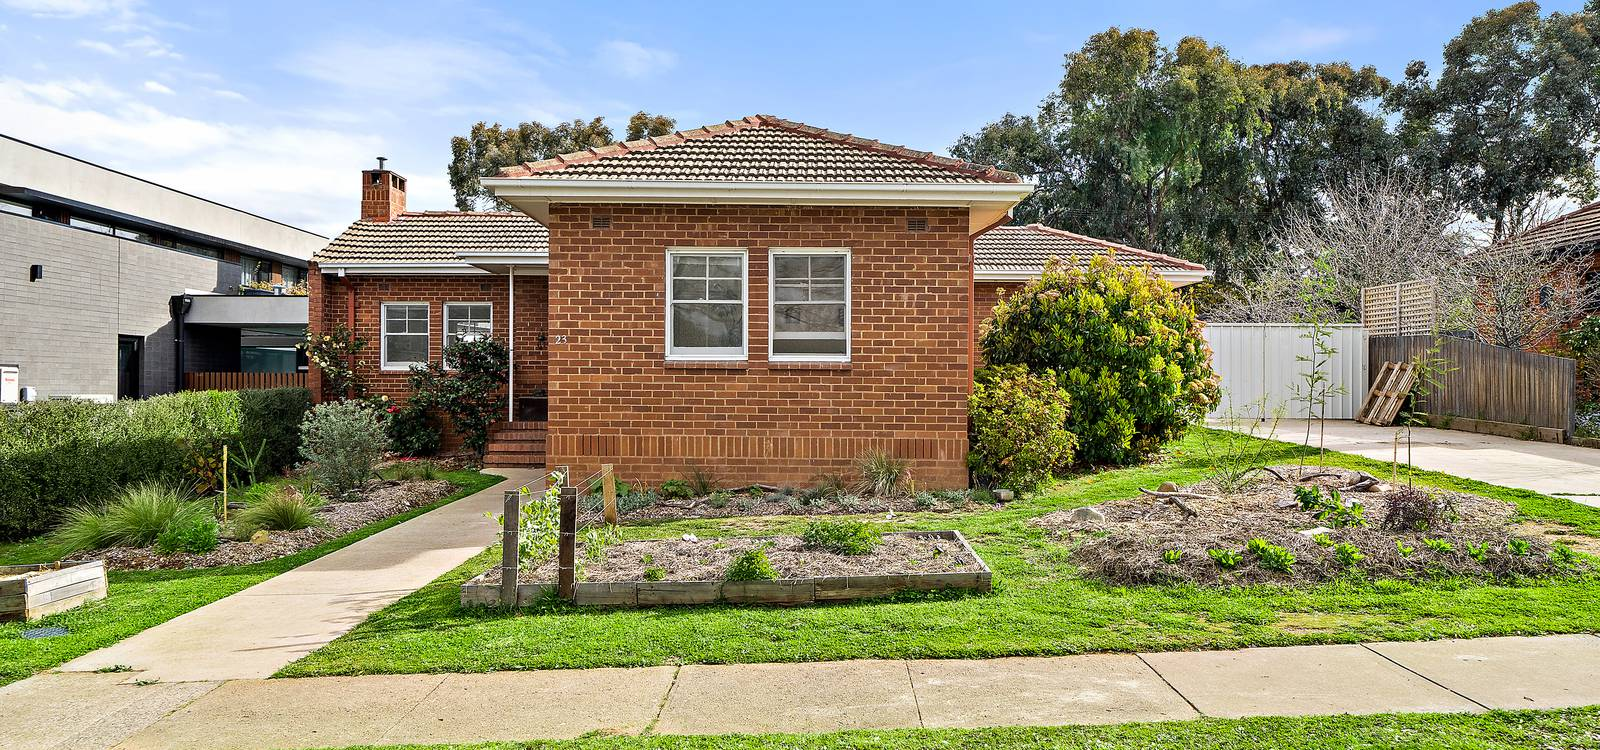 23 Frome Street GRIFFITH, ACT 2603 - photo 1